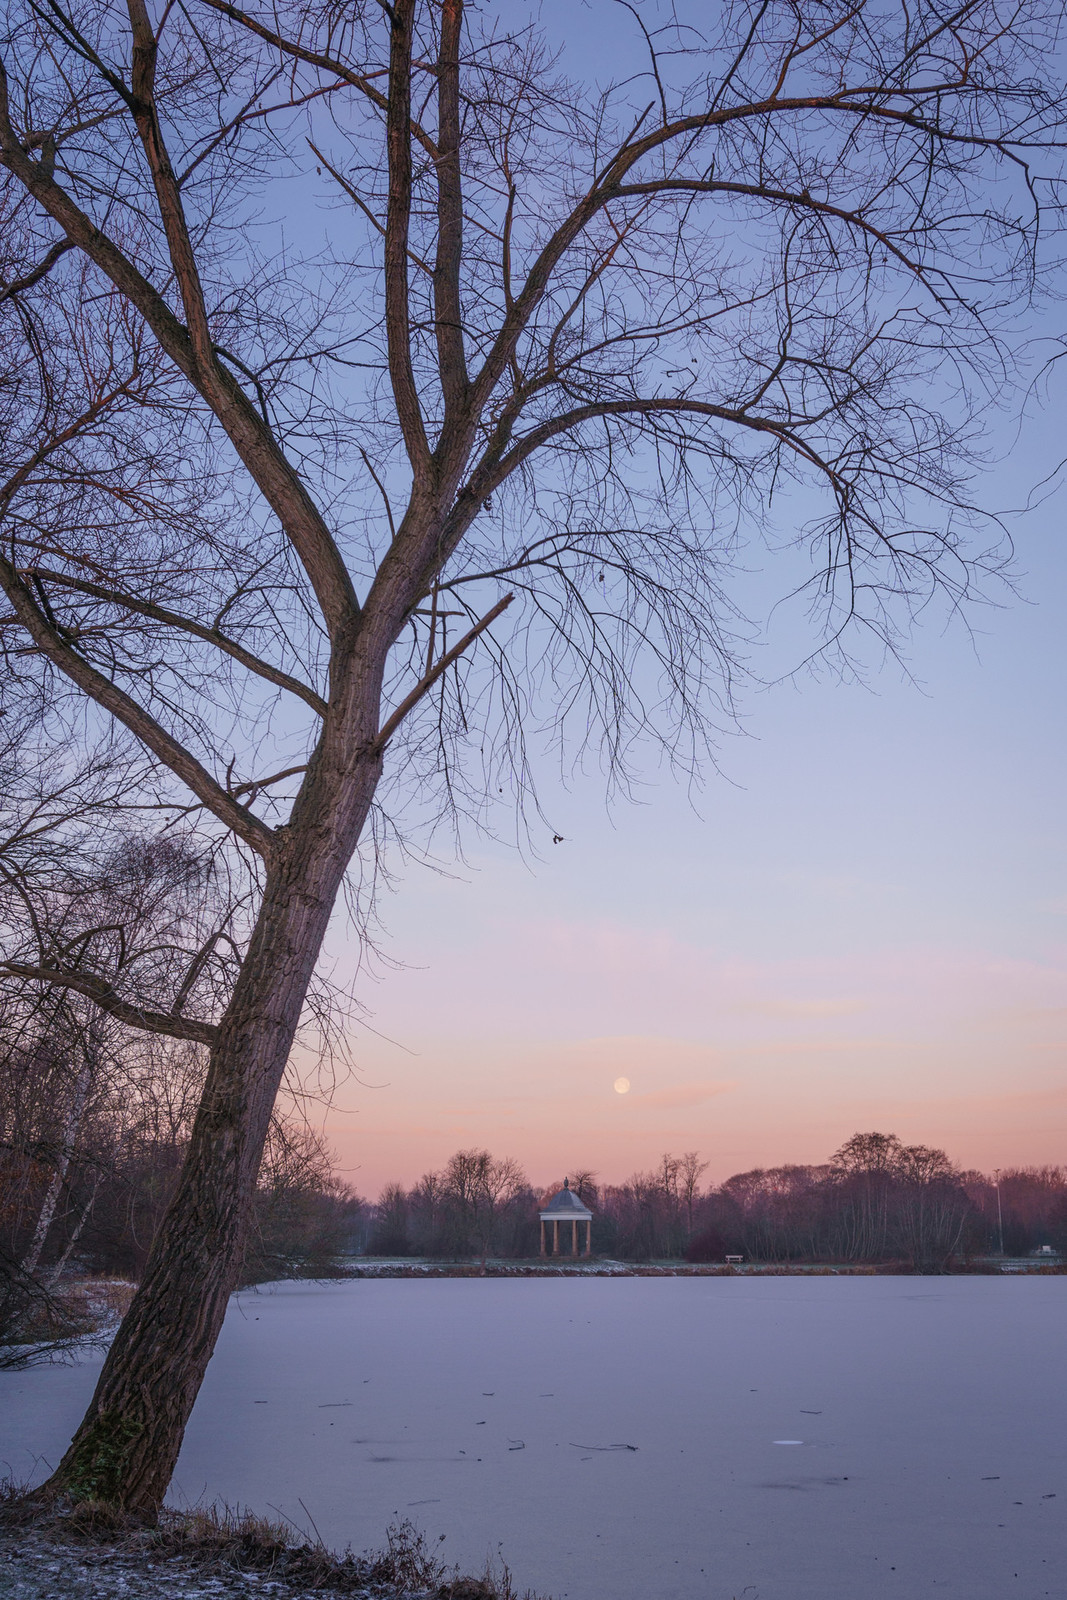 A tree at a frozen lake in Braunschweig